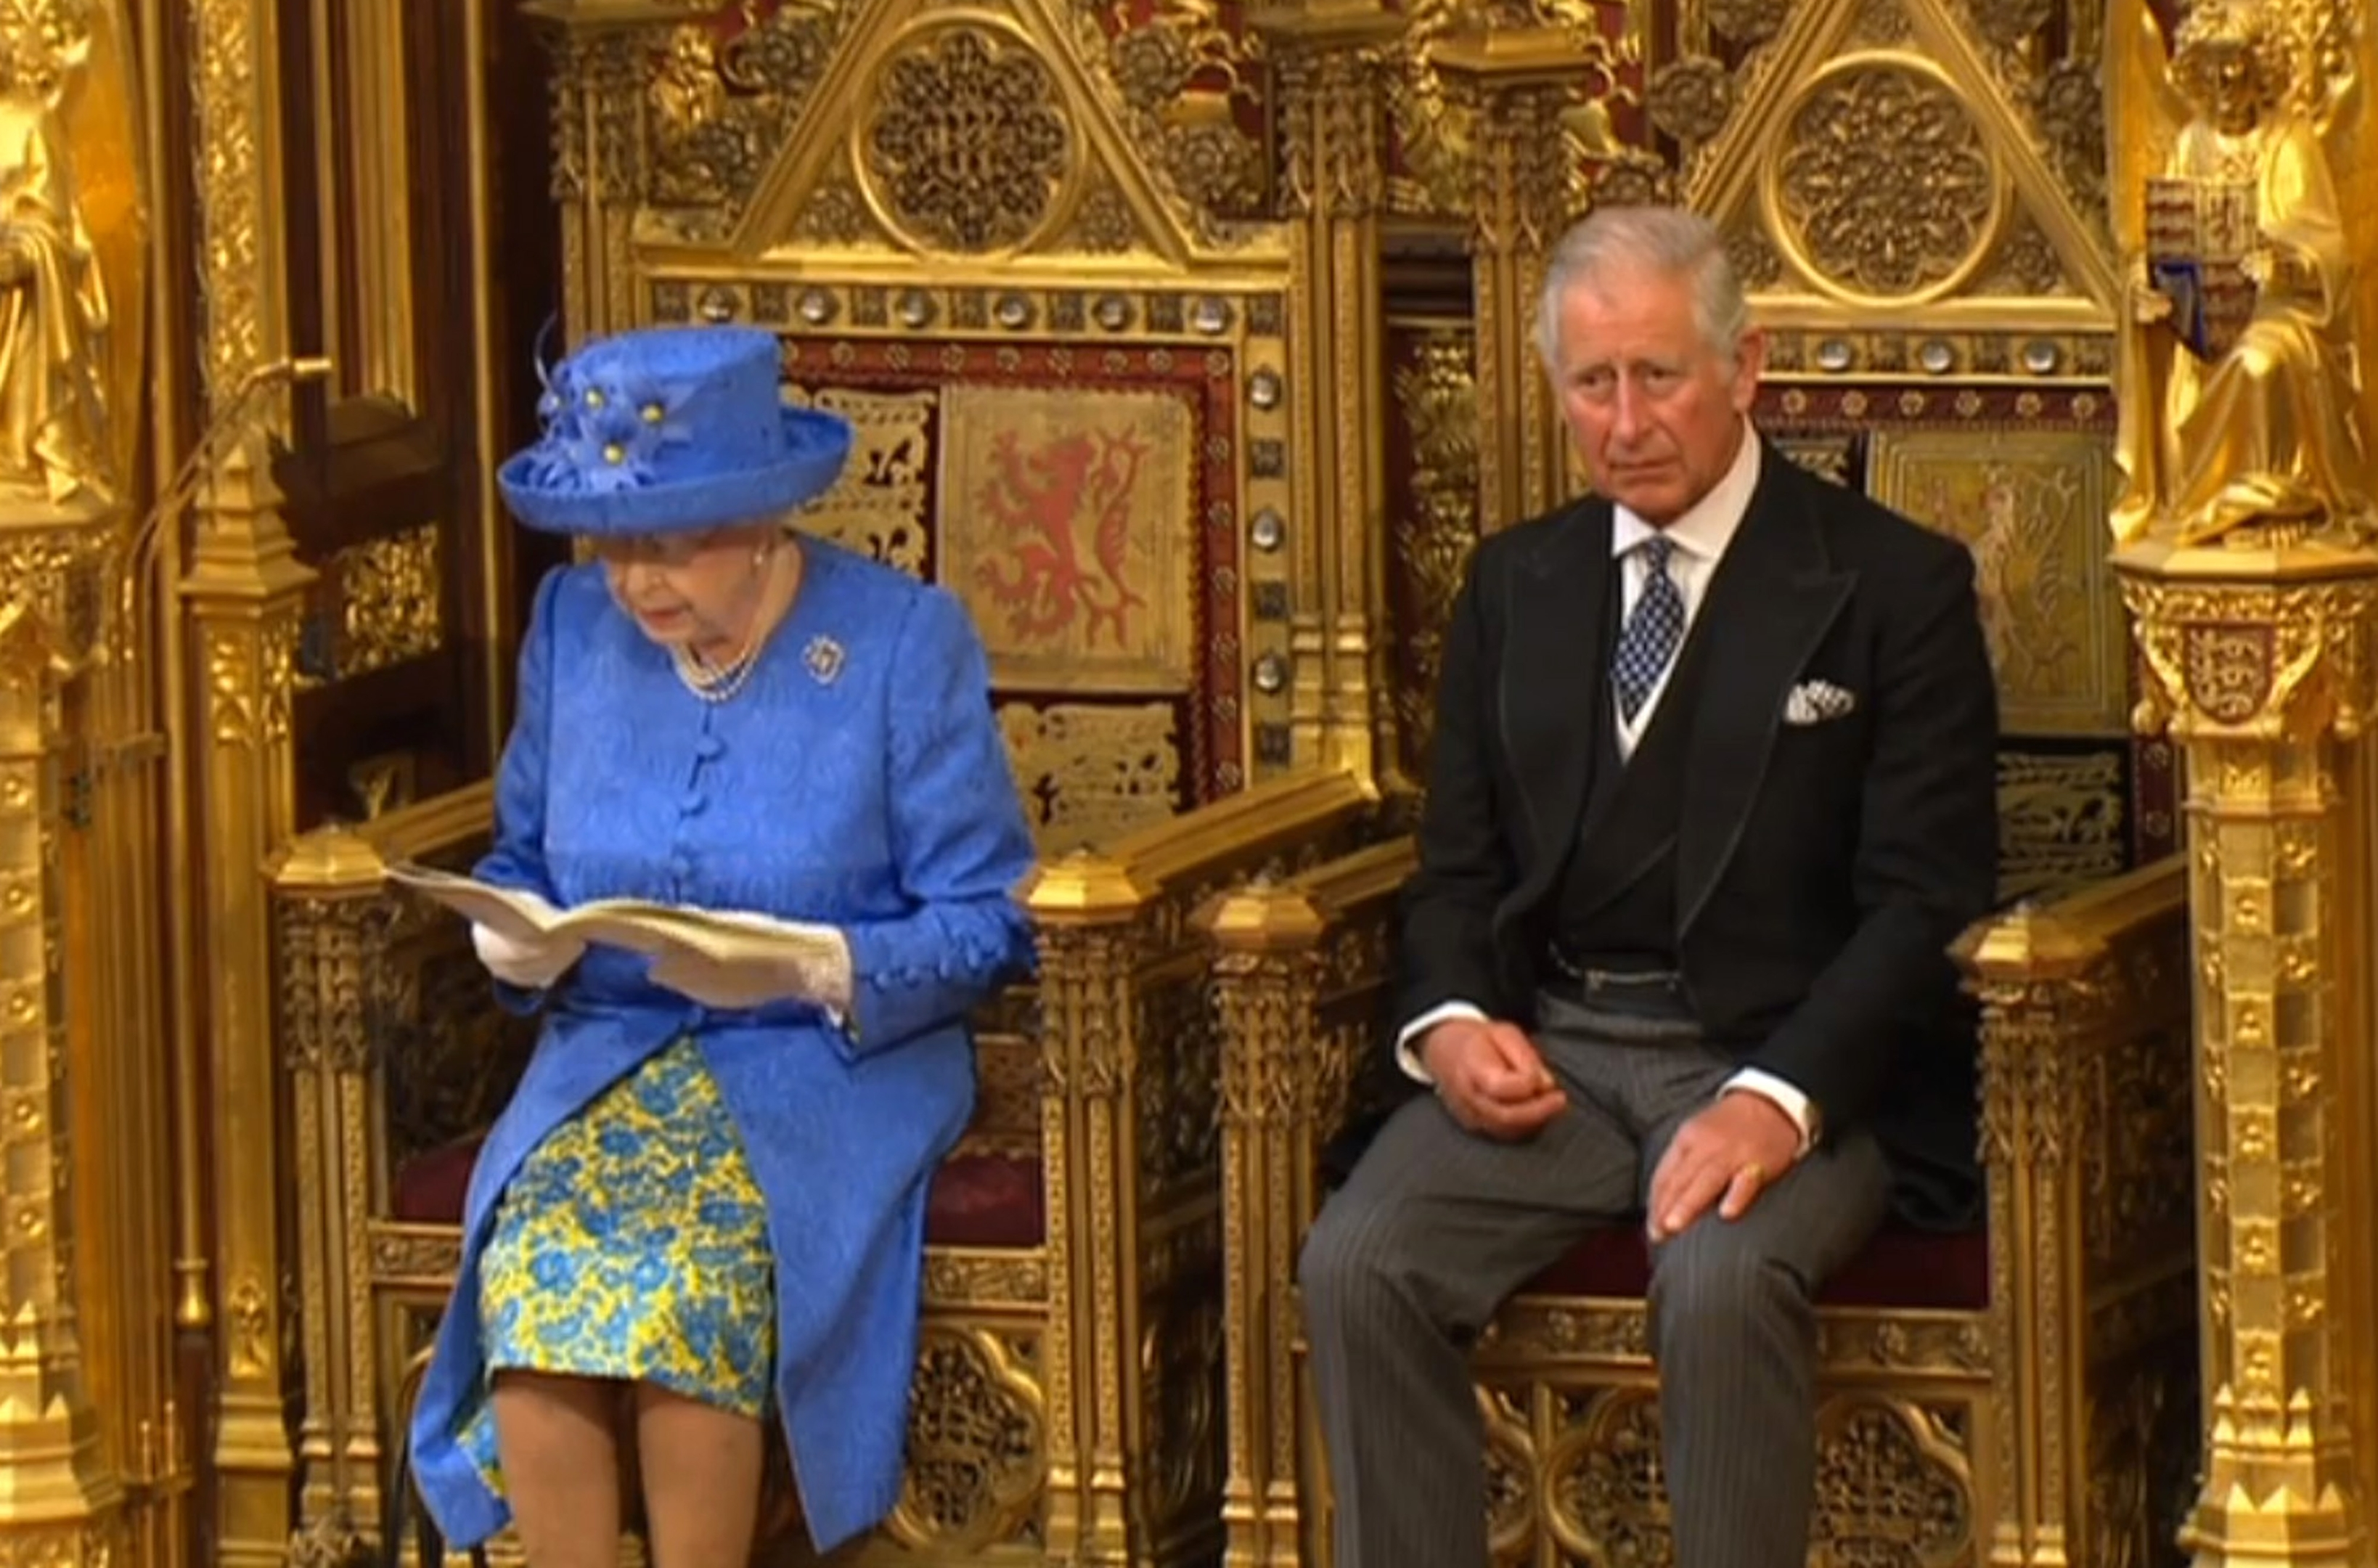 The Prince of Wales and Queen Elizabeth II during Queen's Speech in the House of Lords at the Palace of Westminster in London.